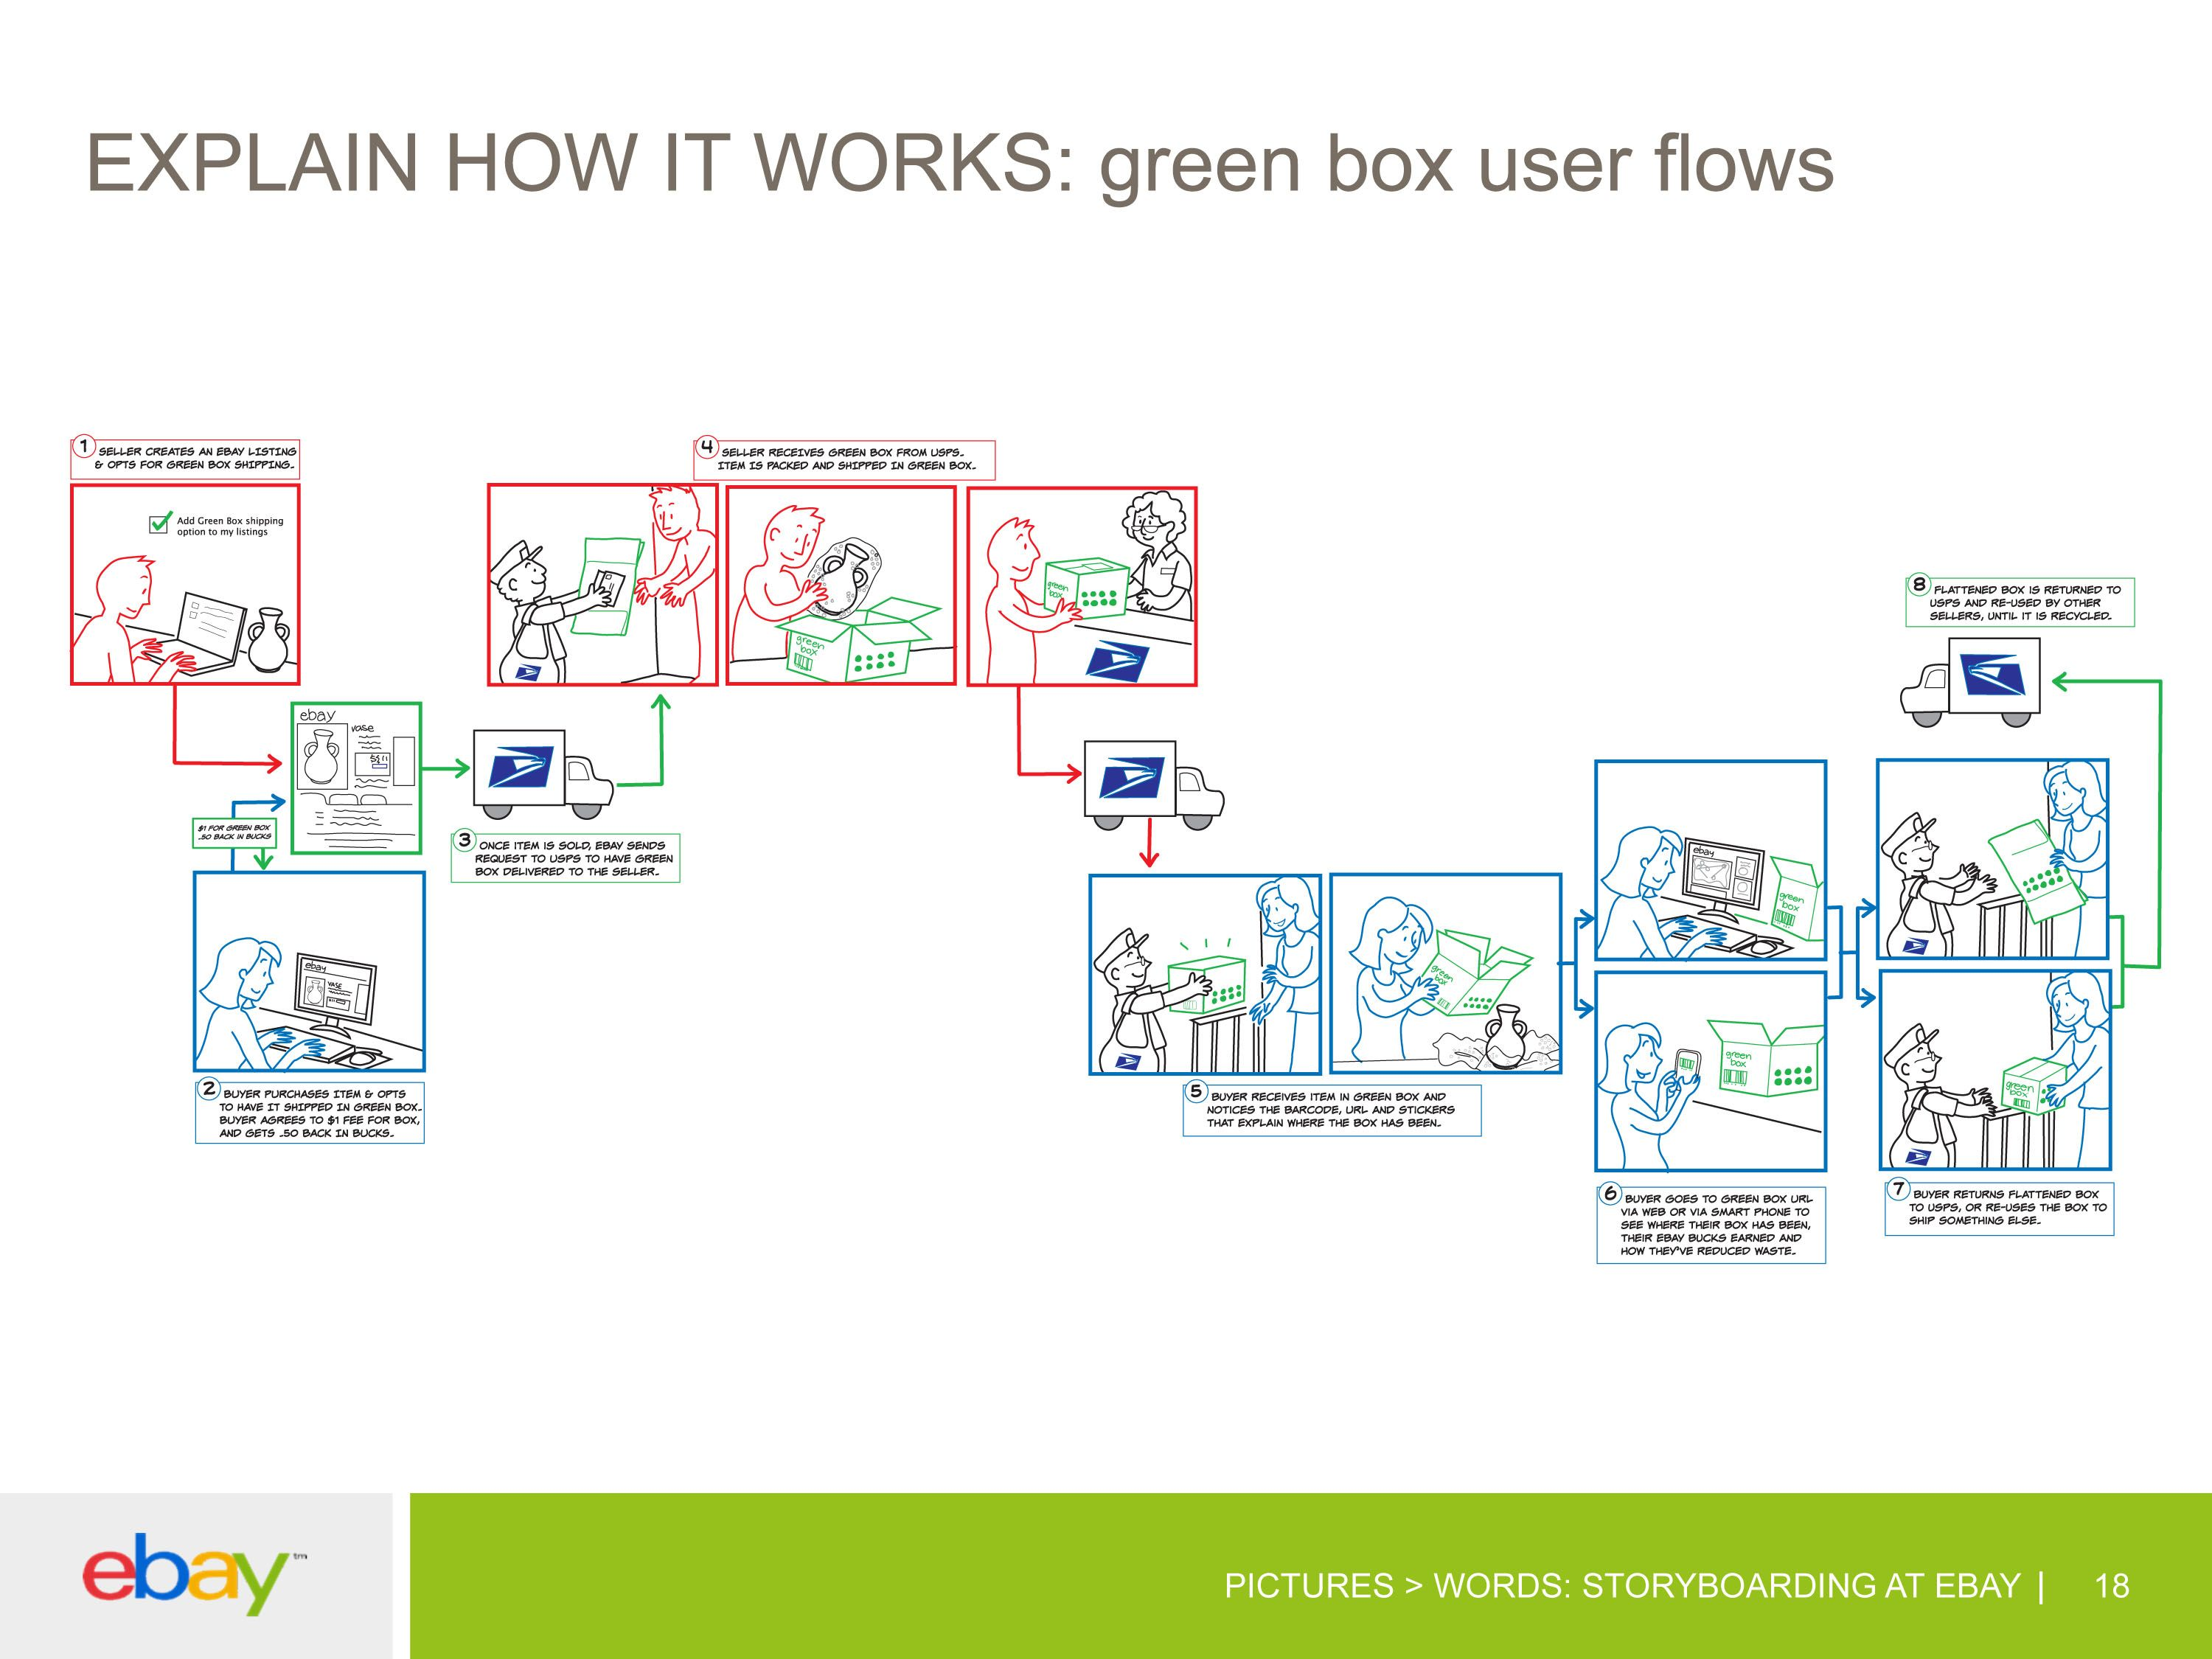 flow diagram showing how eBay buyers and sellers can use/return/ship